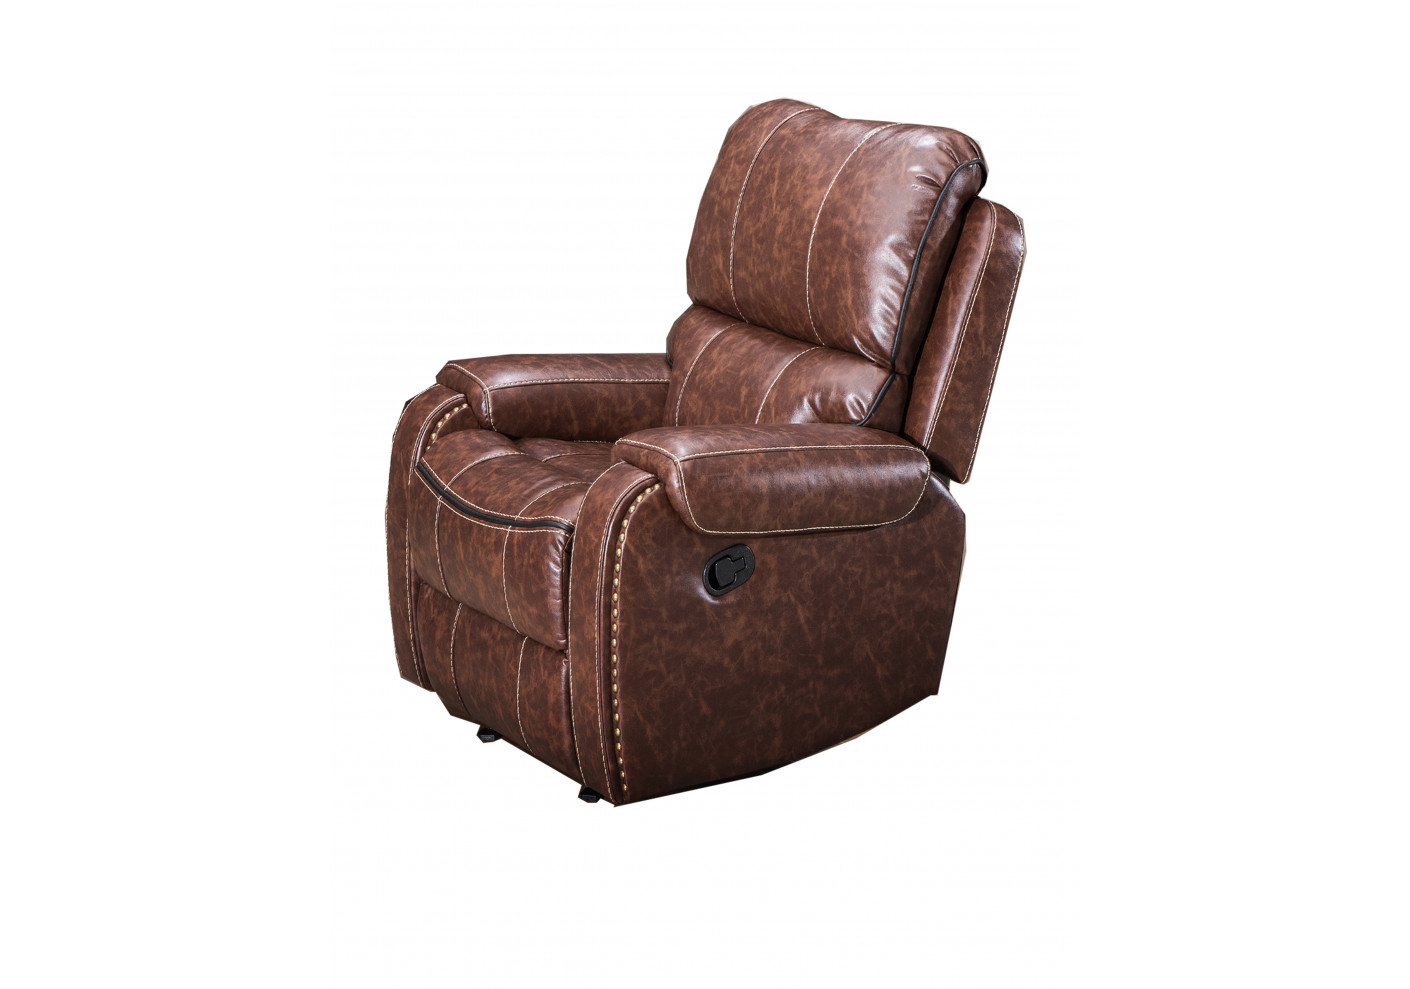 Fauteuils Relax Simili Cuir Fauteuil Relax Cocoon Simili Cuir Marron